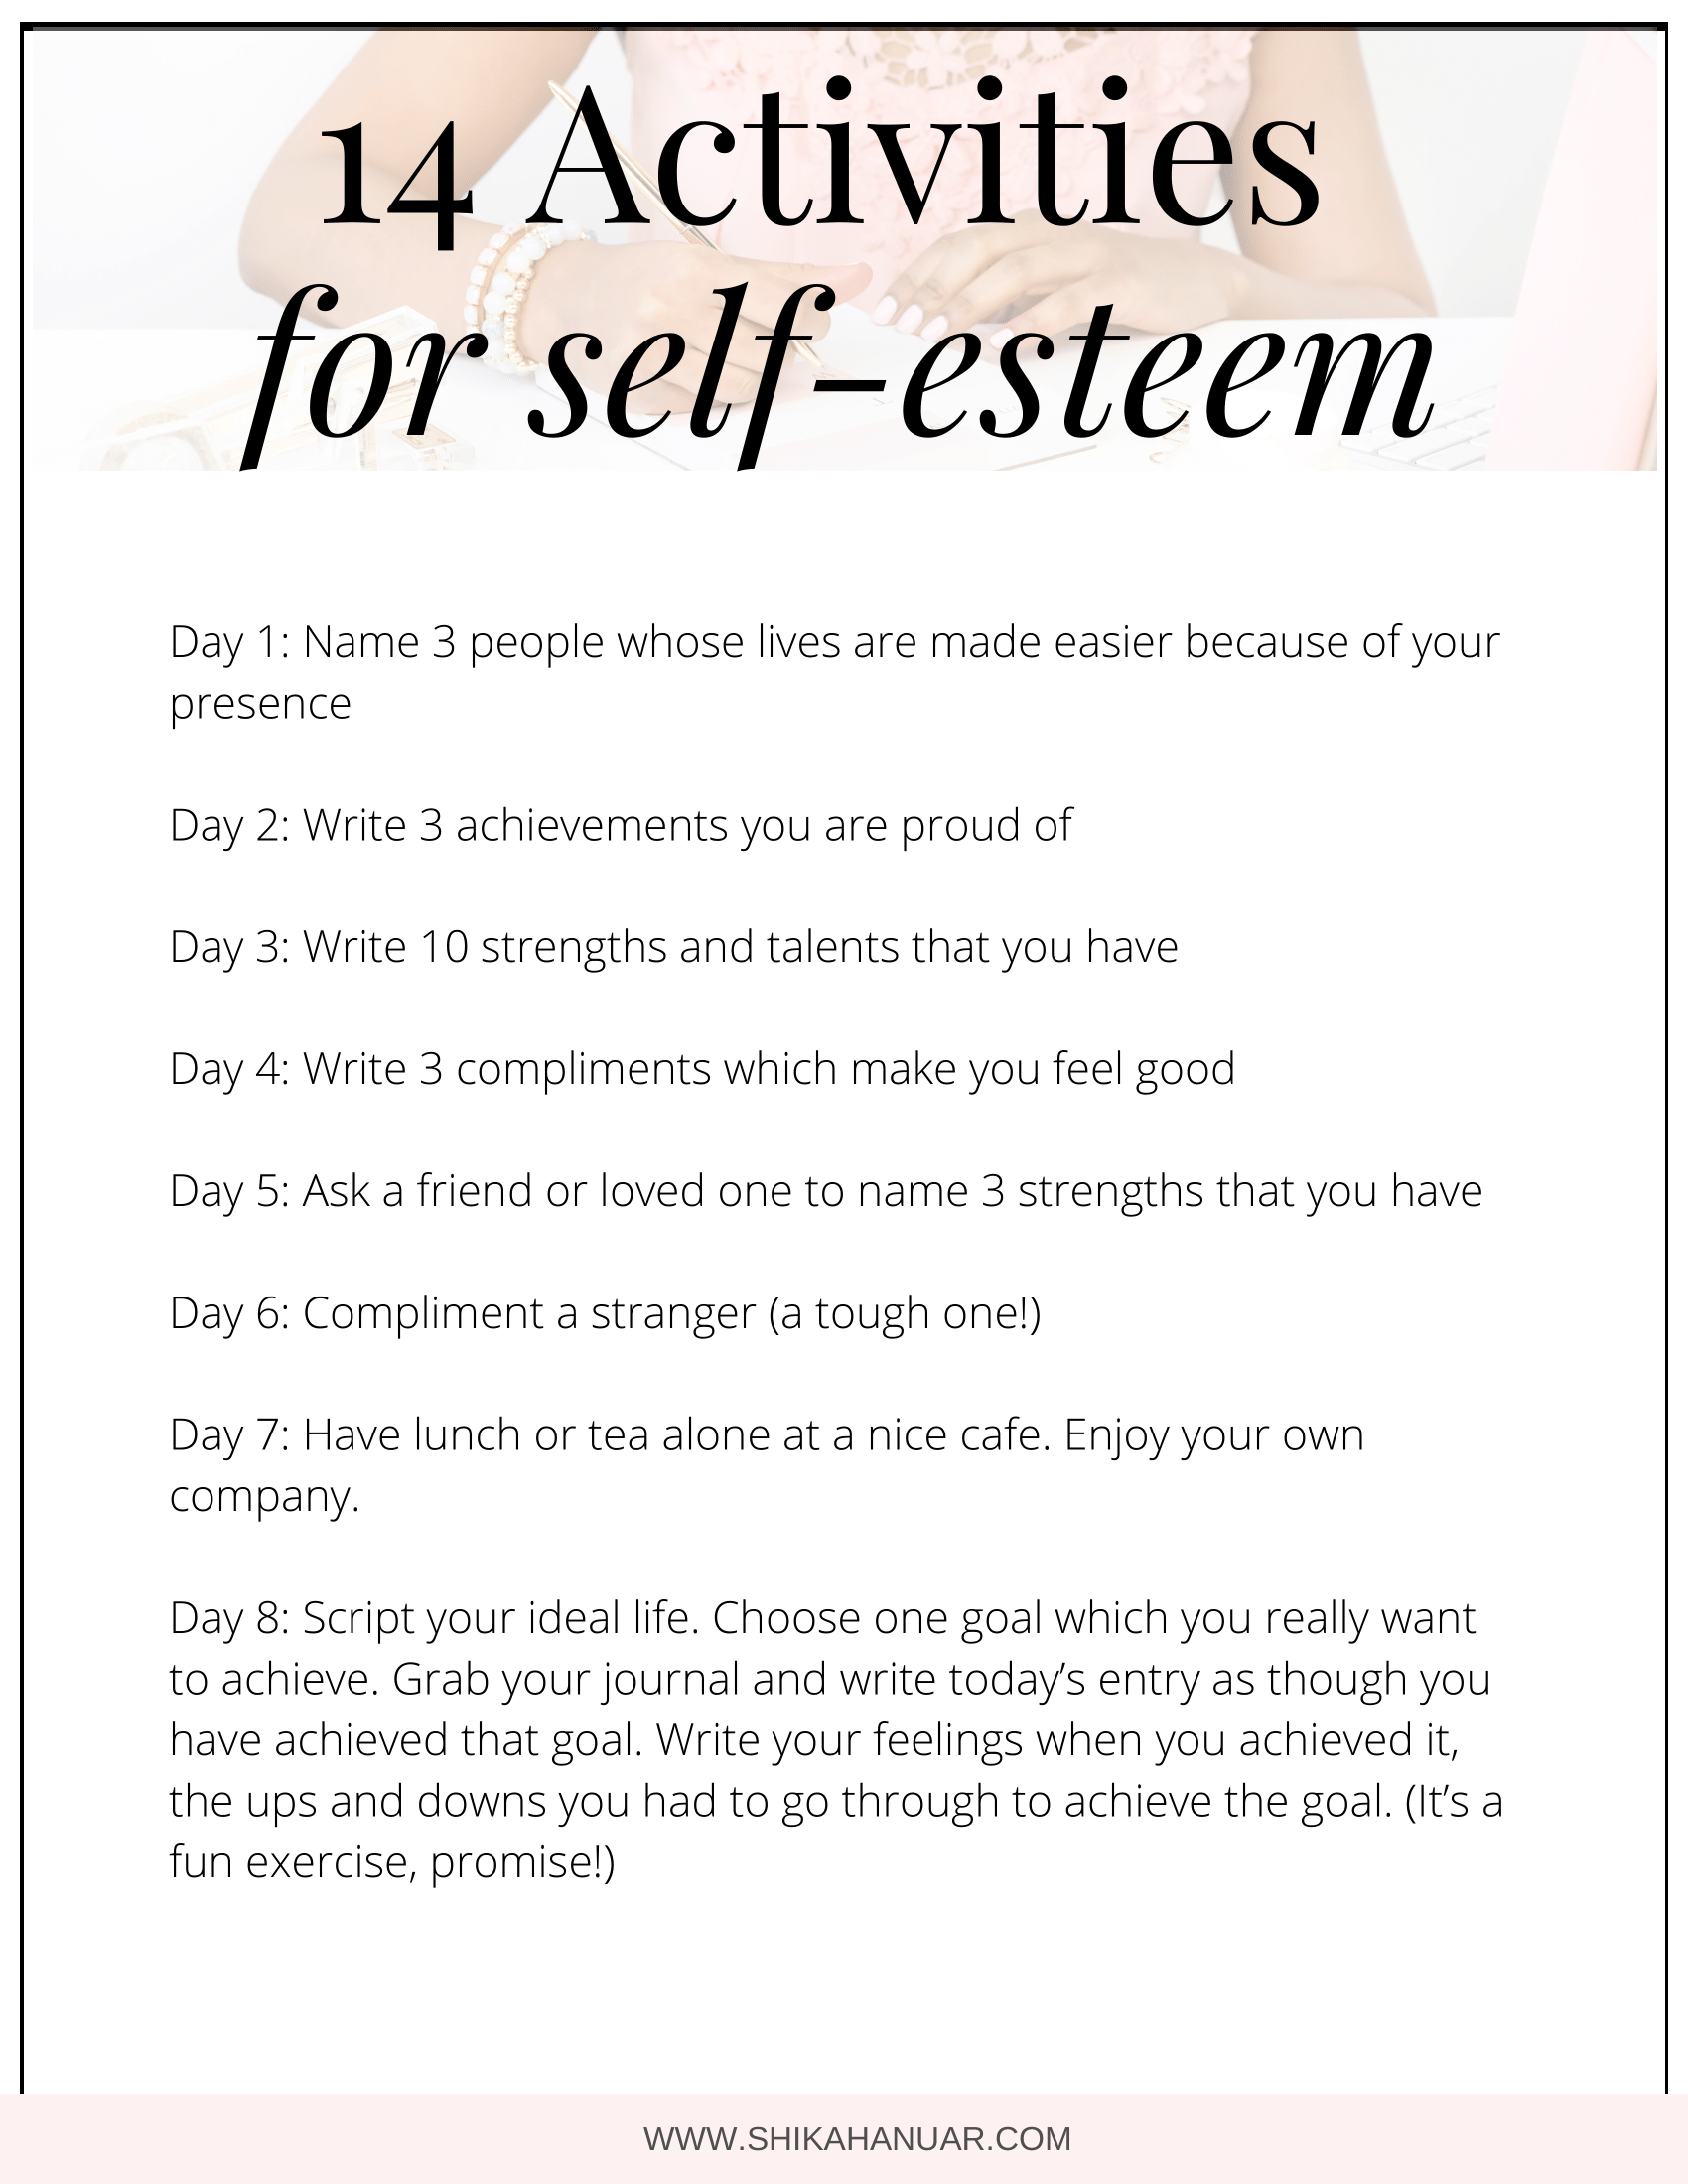 14 Activities To Build Your Self Esteem And Self Worth